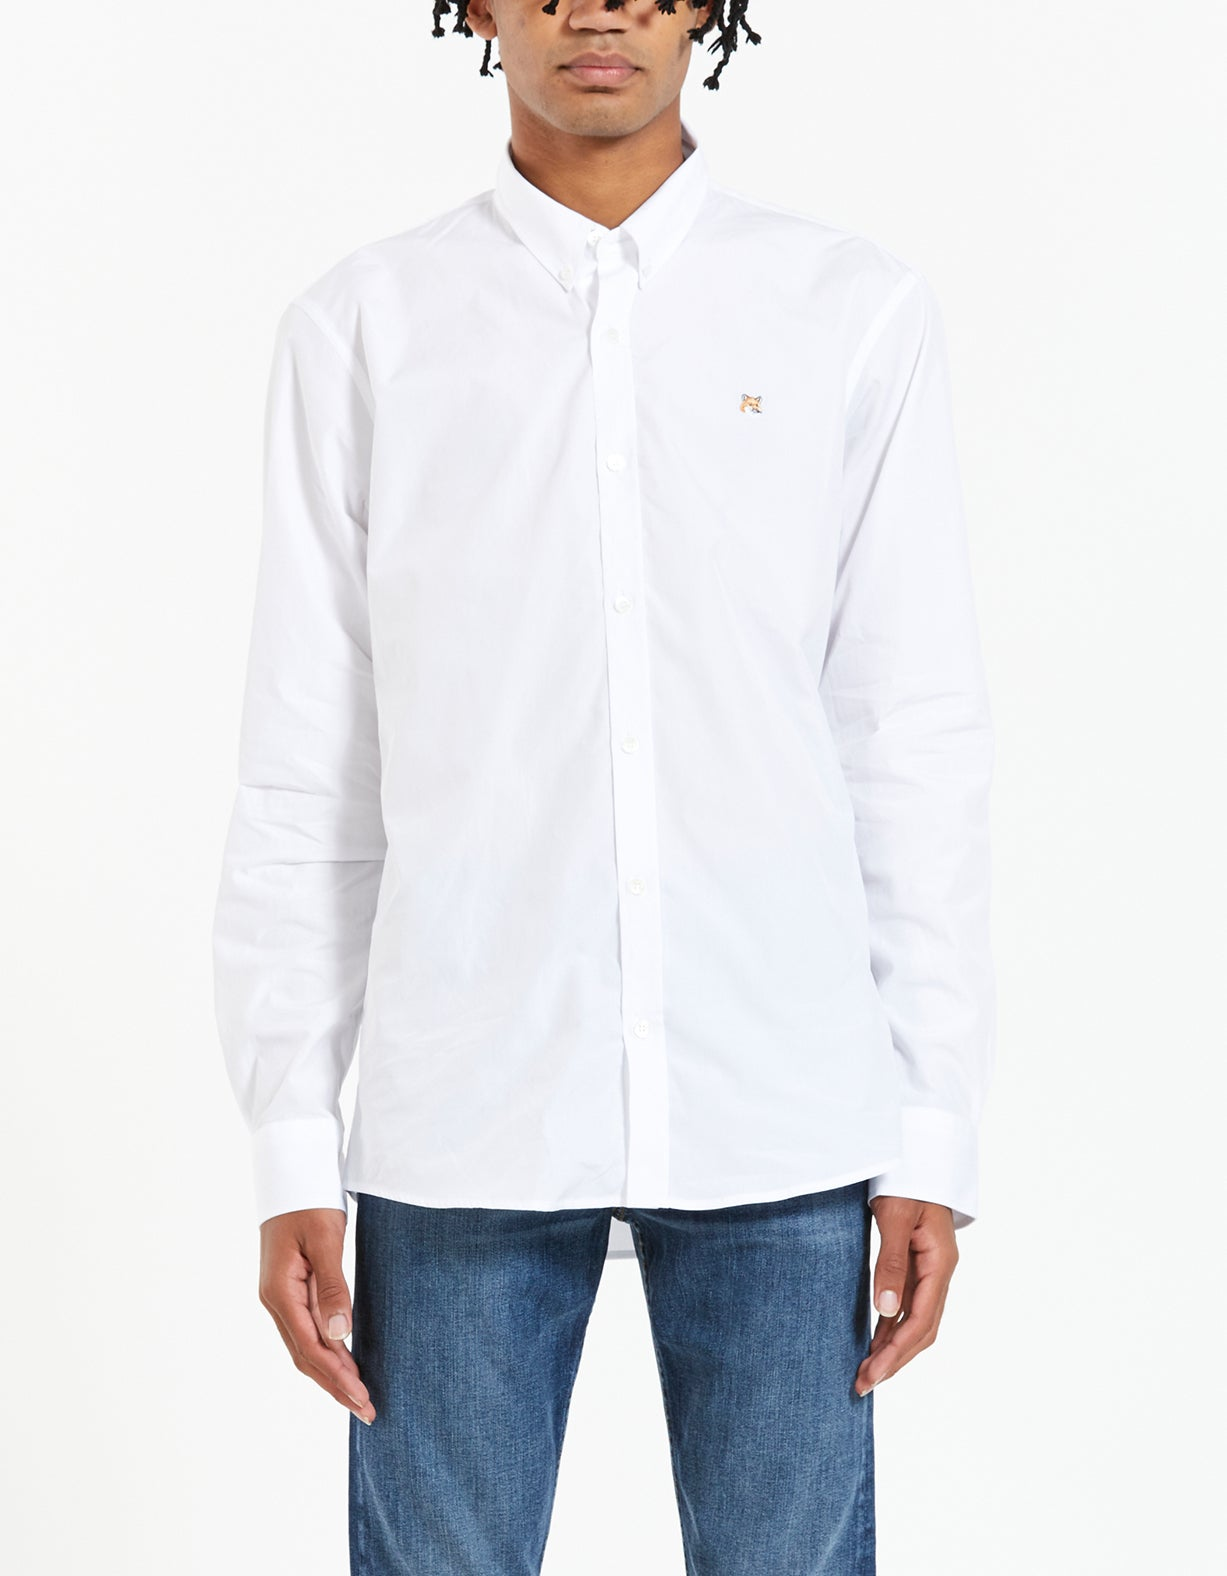 Fox Head Embroidery Classic Shirt - White